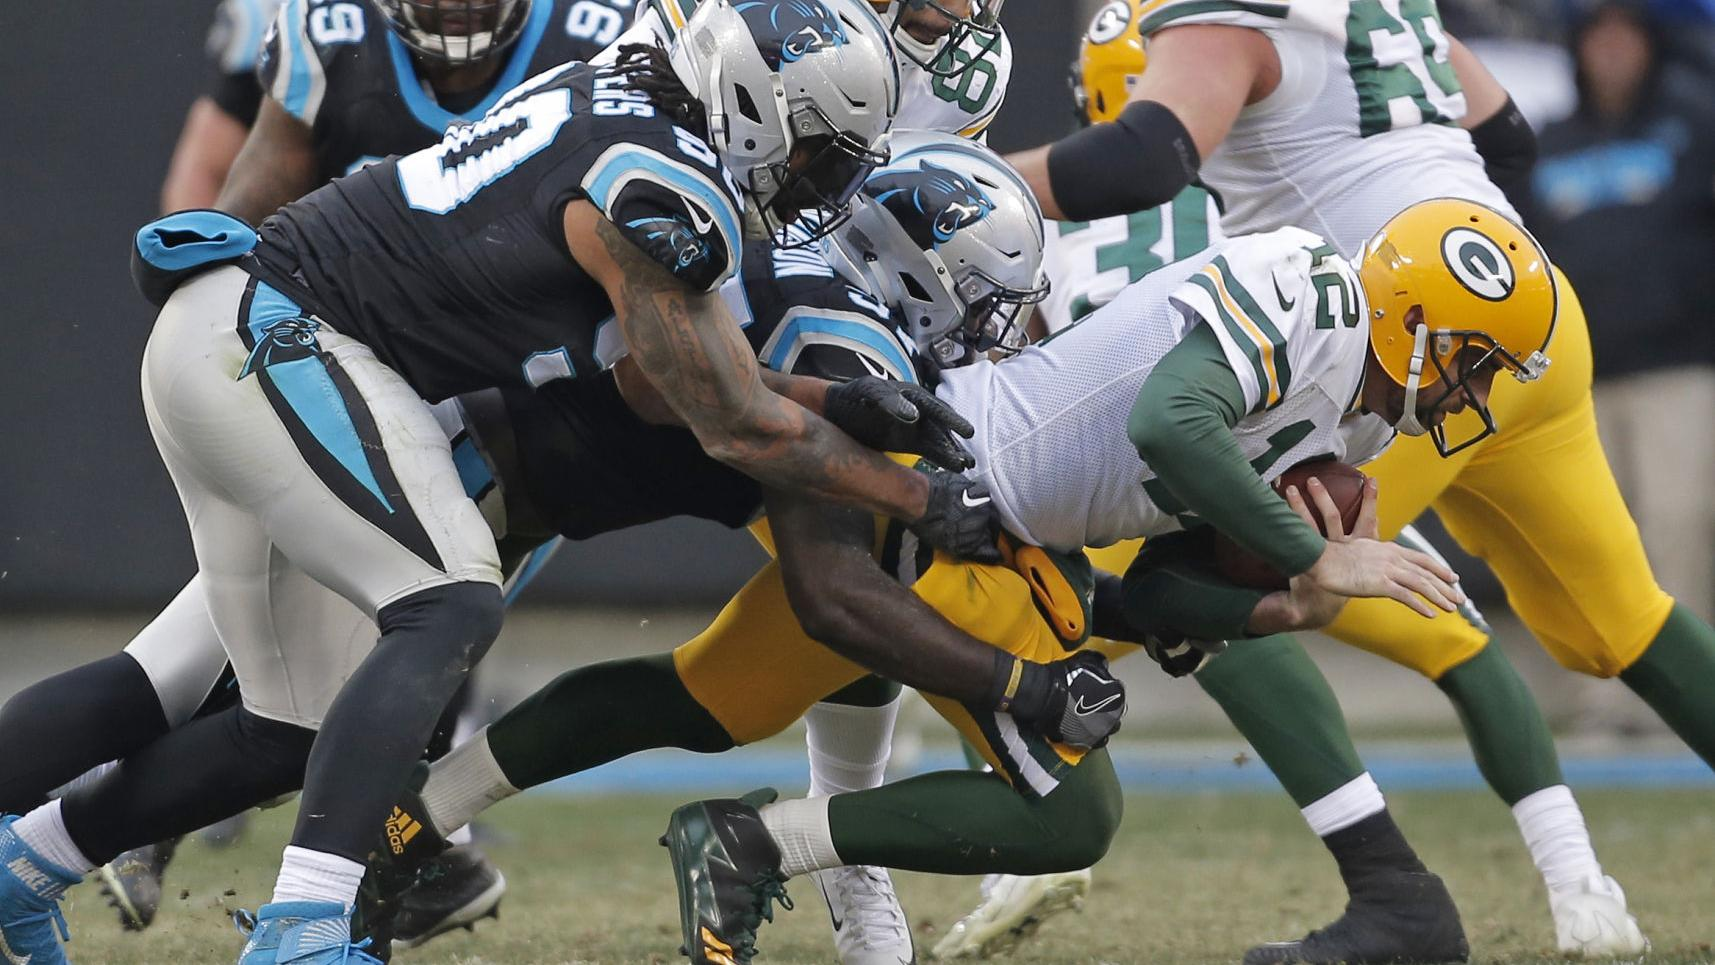 Aaron Rodgers comes up short in return as Green Bay falls to Carolina Panthers 31-24